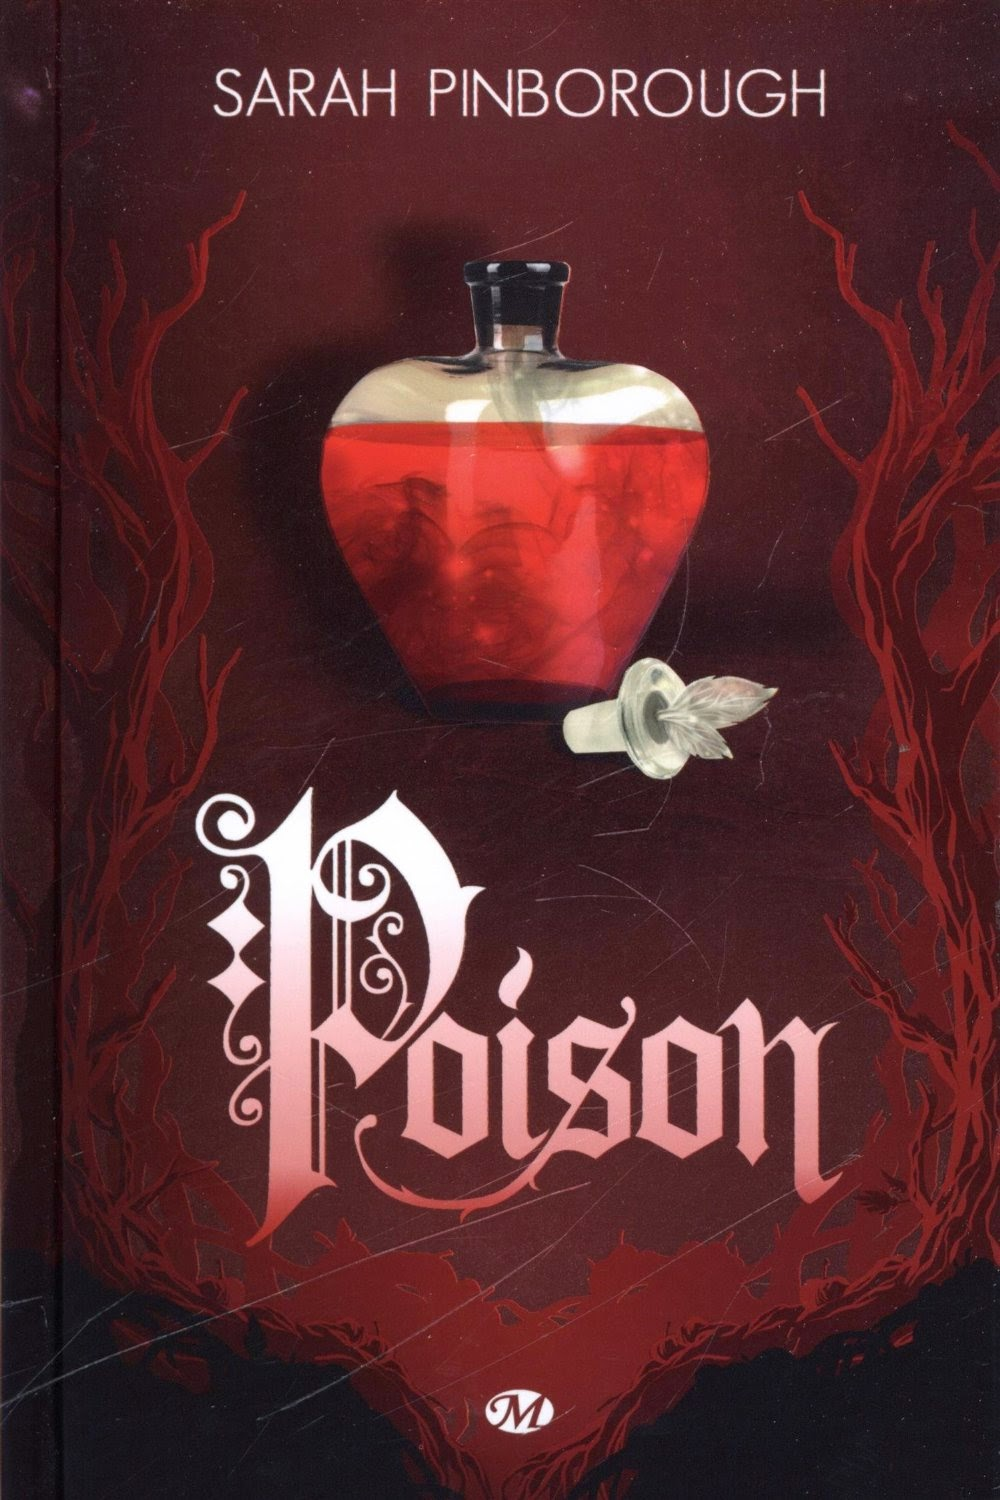 Contes Des Royaumes 1 - Poison de Sarah Pinborough